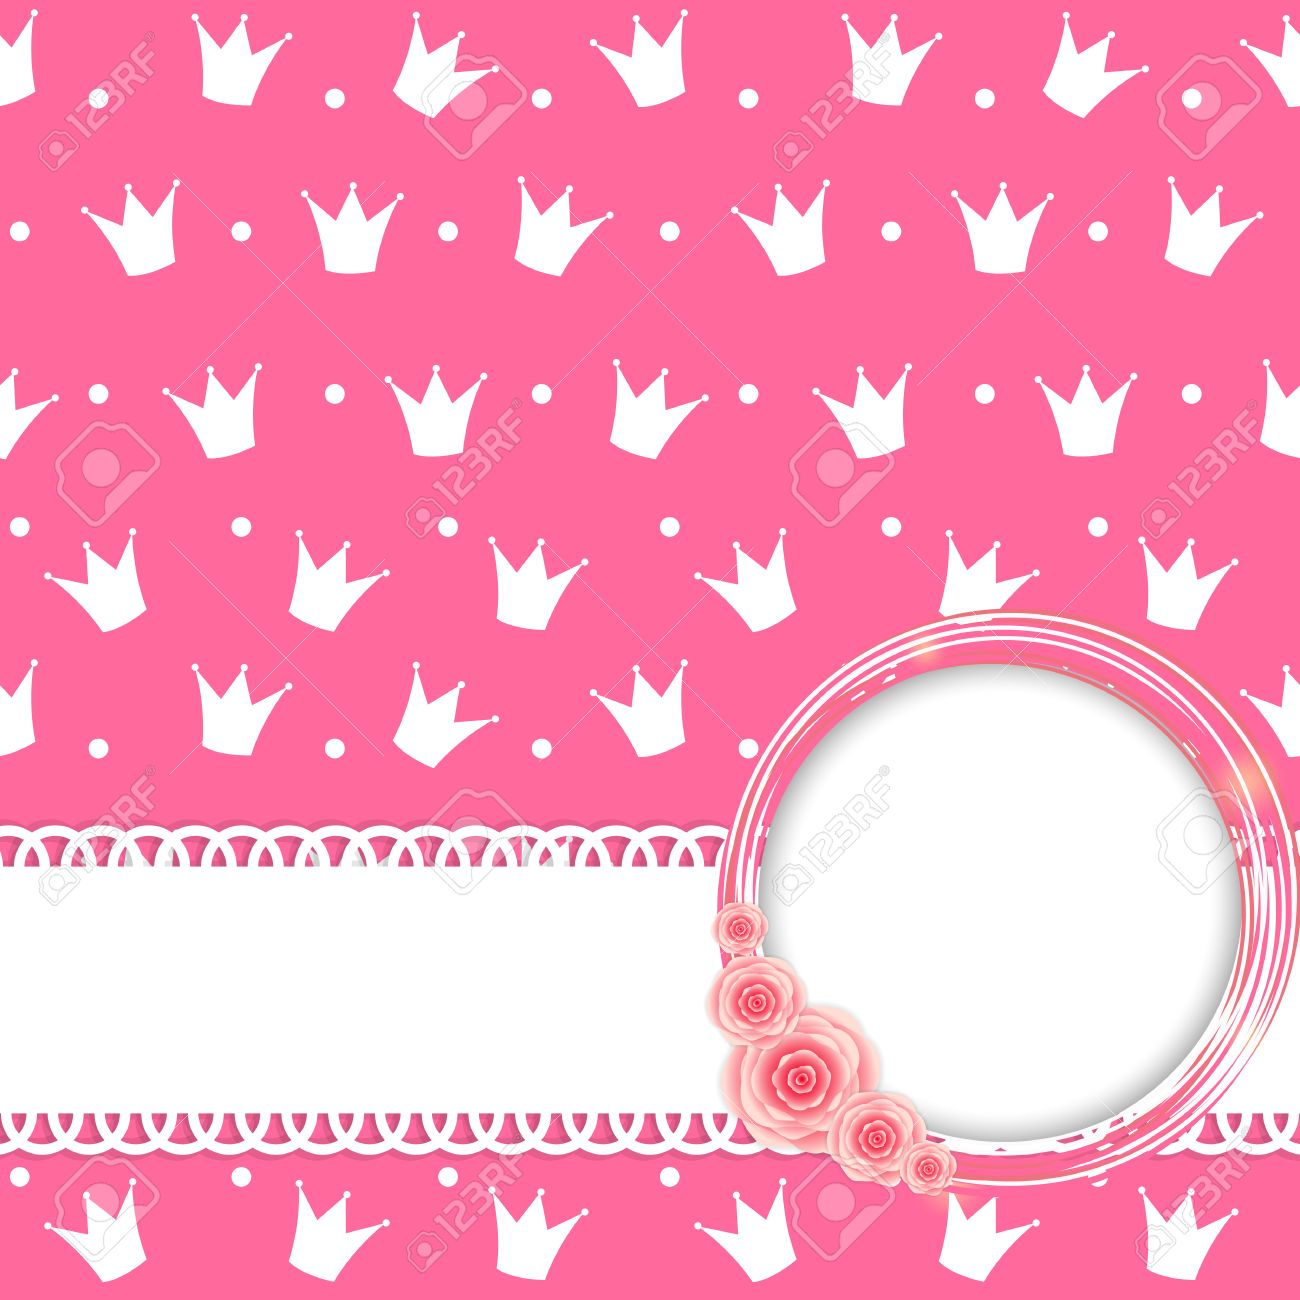 Princess Crown Background Illustration Royalty Free Cliparts Vectors And Stock Illustration Image 32407253